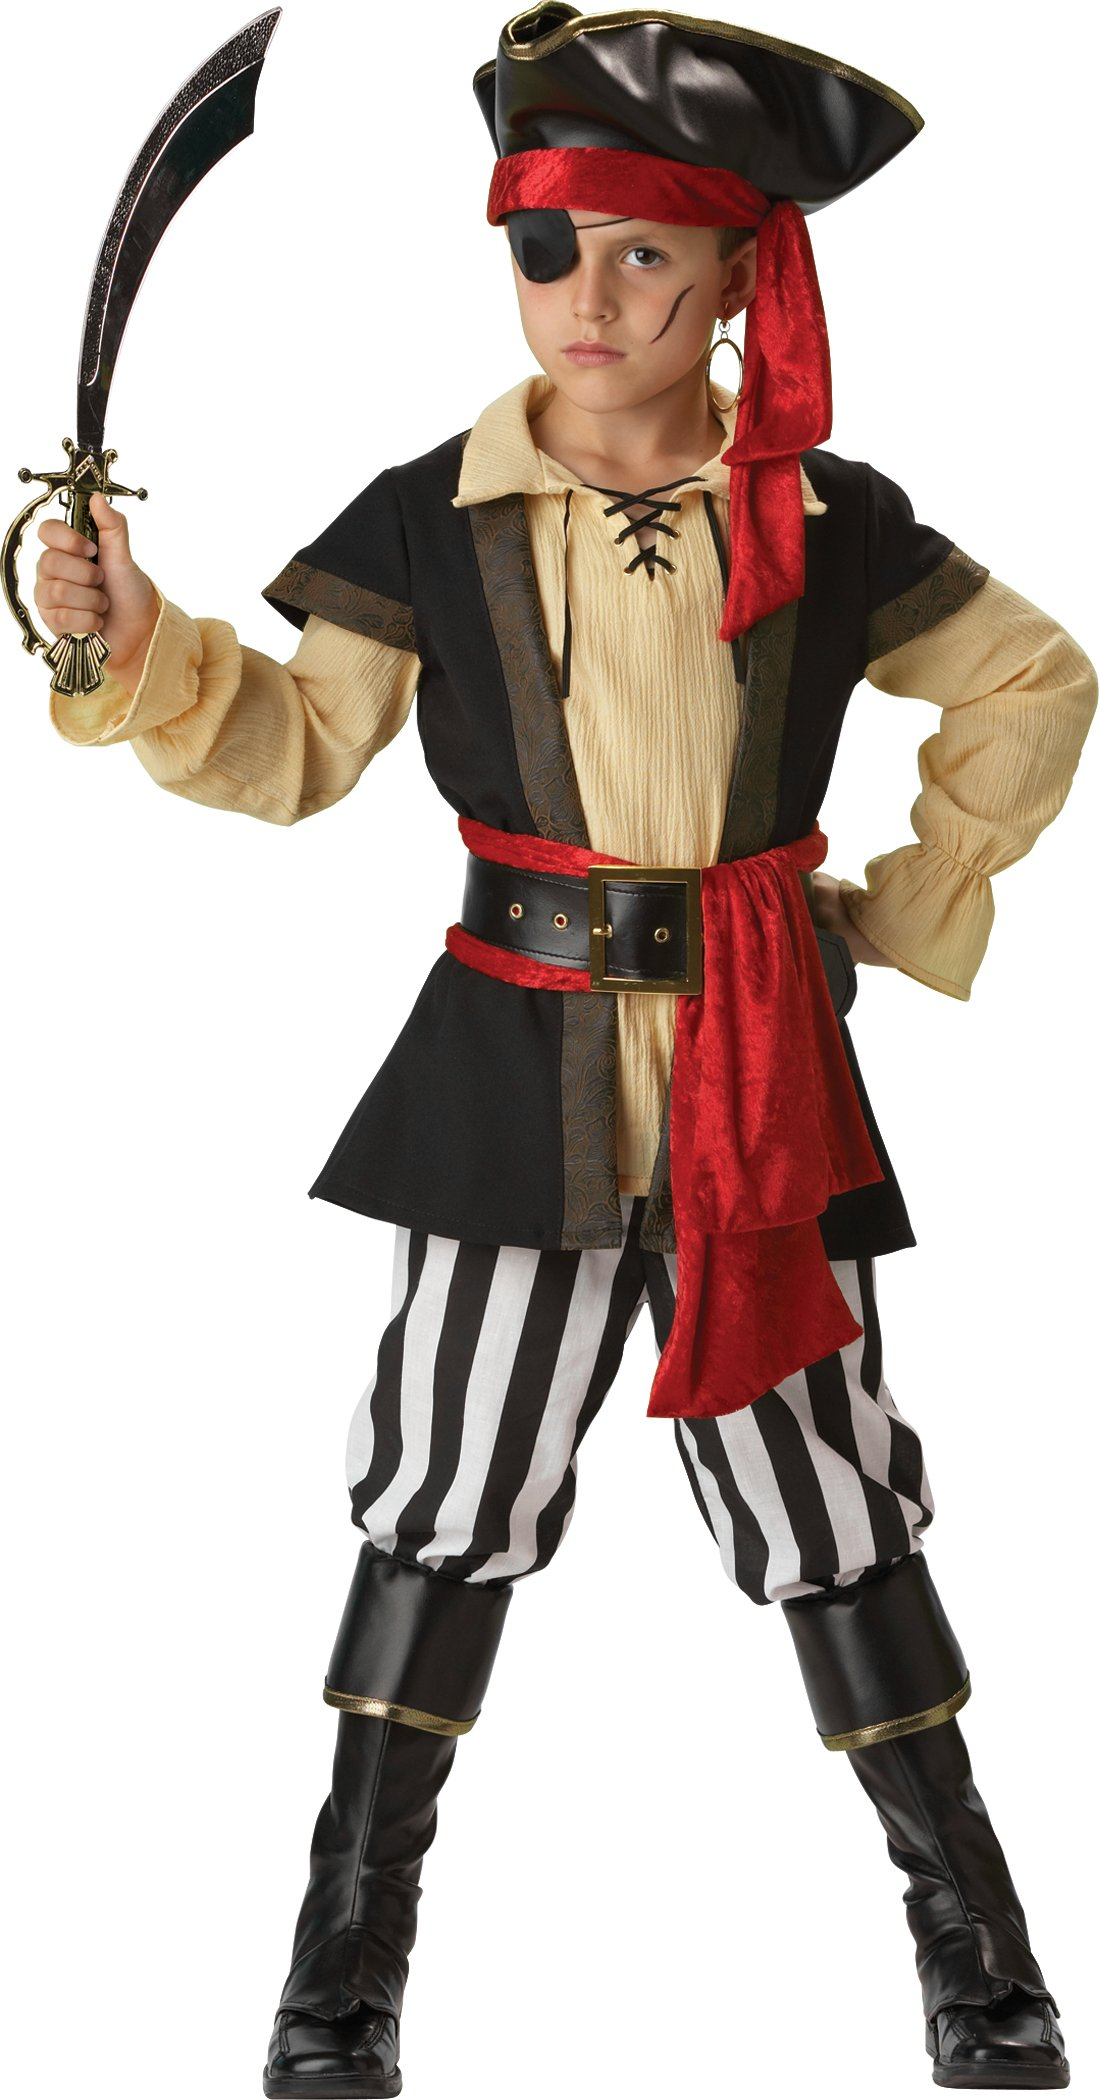 InCharacter Costumes Boys 2-7 Pirate Scoundrel Costume, Black/Red, 6 by Fun World (Image #2)